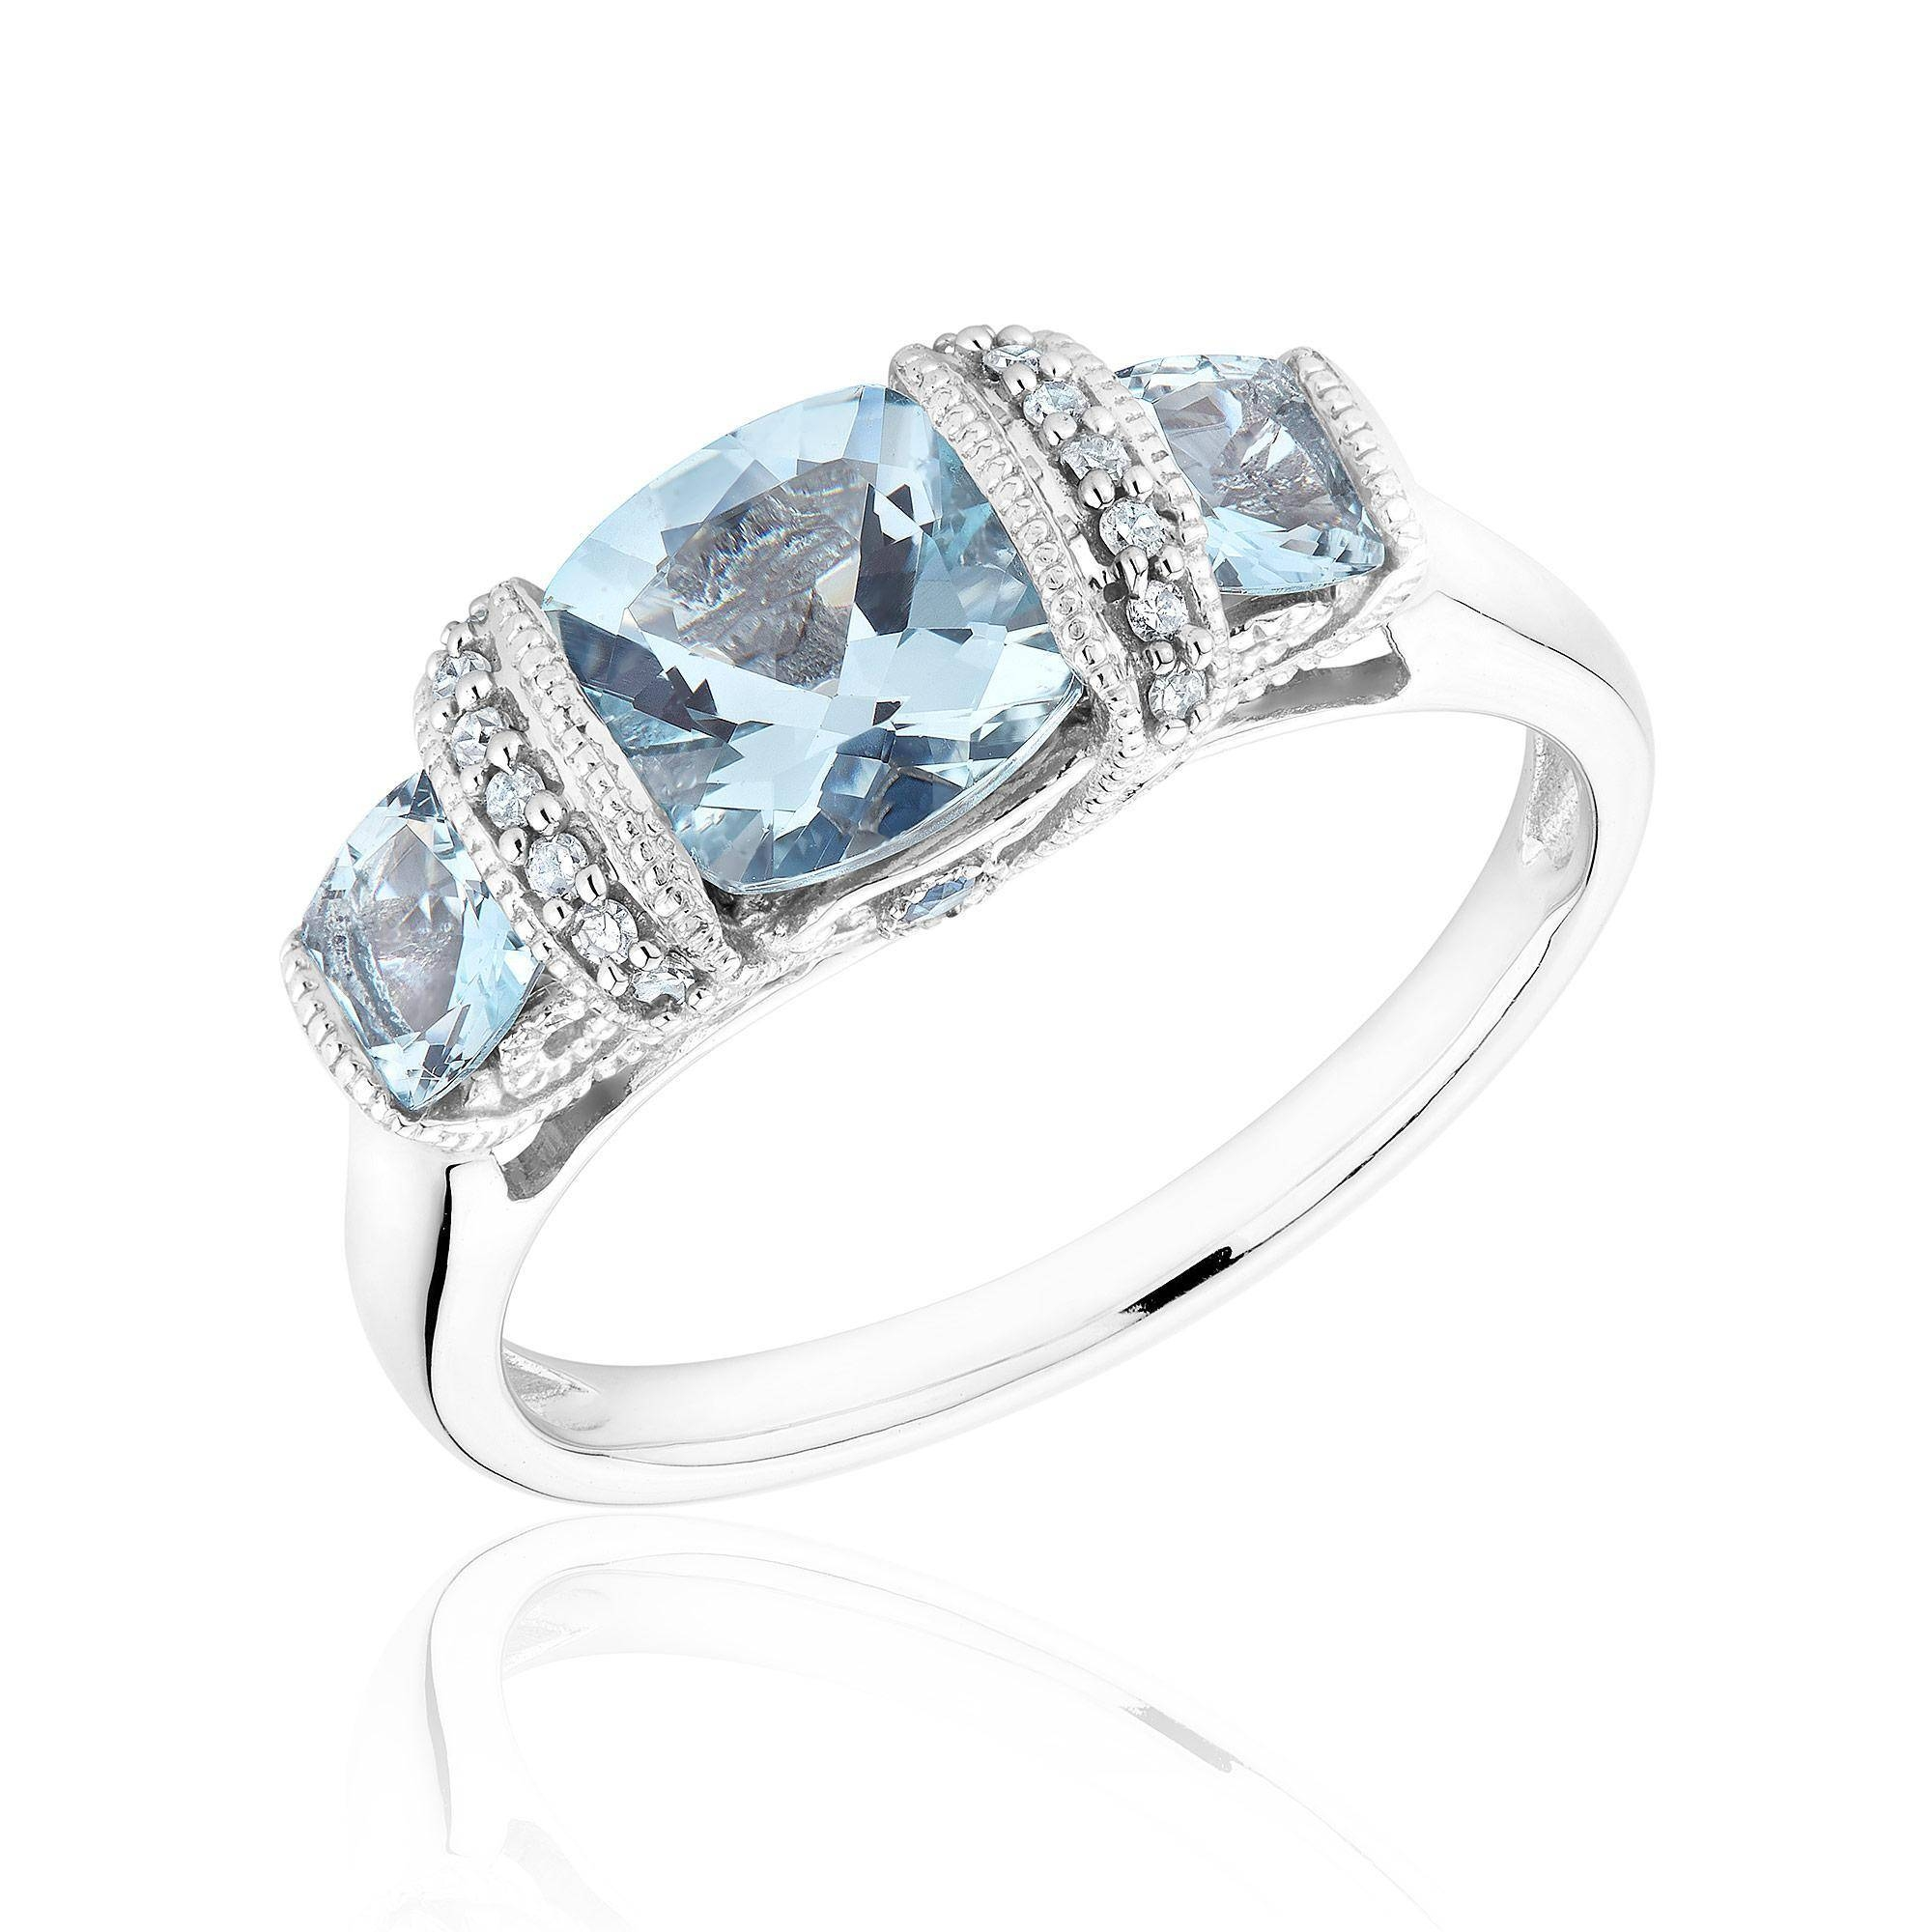 Aquamarine, Blue Sapphire And Diamond Three Stone Ring 1/20Ctw Within Diamond Aquamarine Engagement Rings (View 8 of 15)